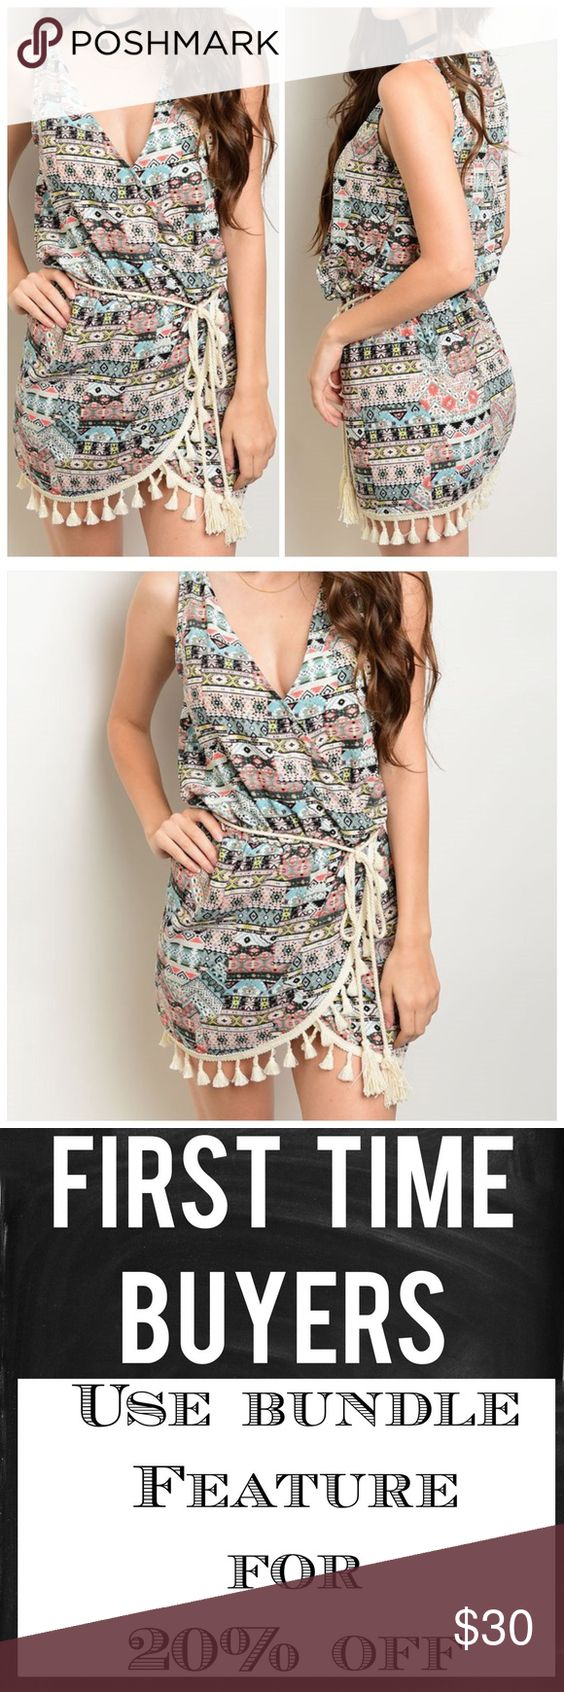 "Multicolred wrap tassel trim dress Perfect cool and casual dress. Multicolored all over print. Surplus wrap front. Tie waist with tassel trim and hem. Rock this look anywhere this summer!! Made in the USA. 100% polyester. Approximately 33"" long. CupofTea Dresses Mini"